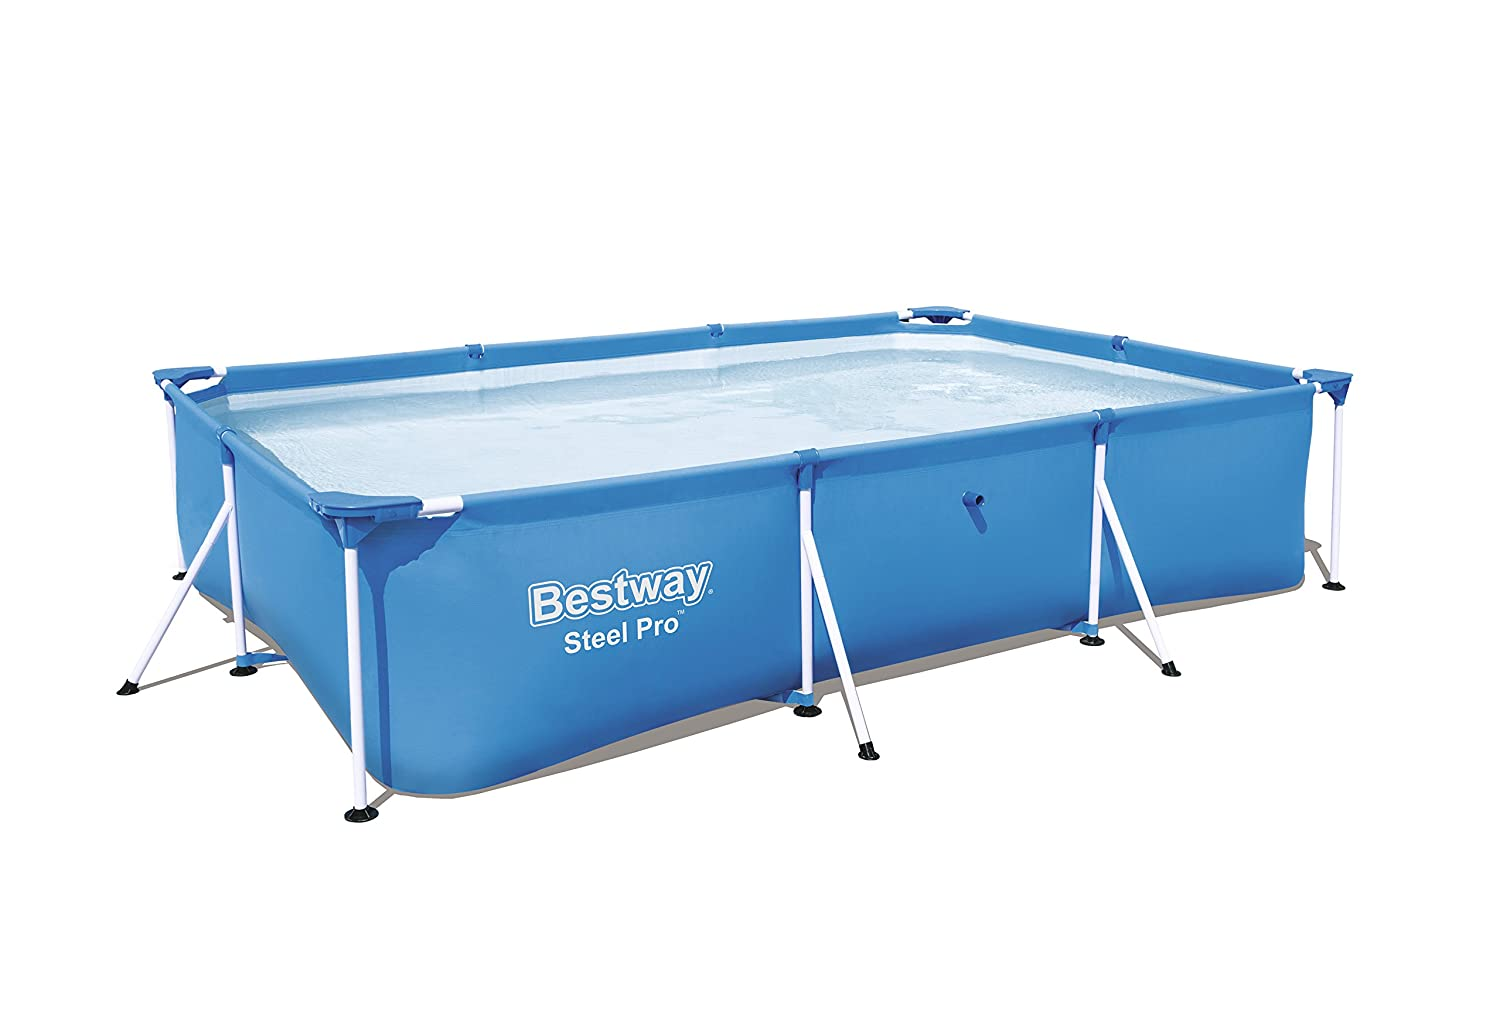 Bestway Steel Pro Splash - Pool of 221 x 150 x 43 cm, 1,200 l BW56401